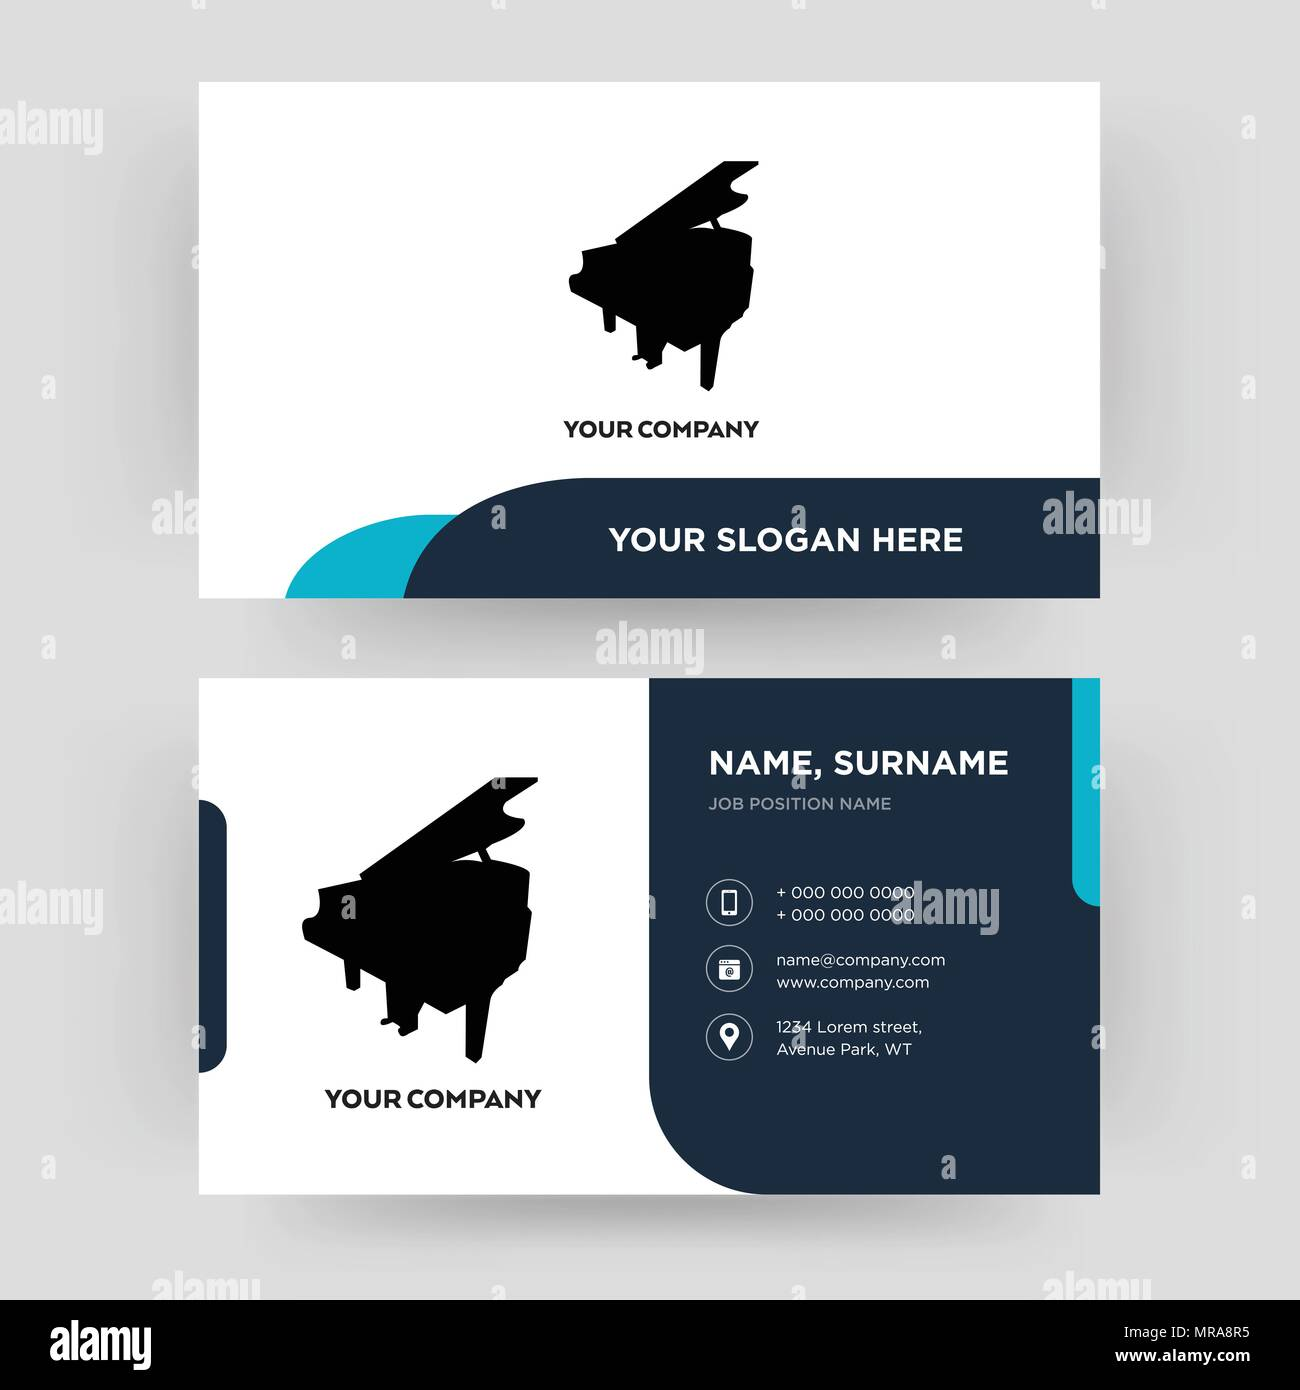 grand piano business card design template visiting for your